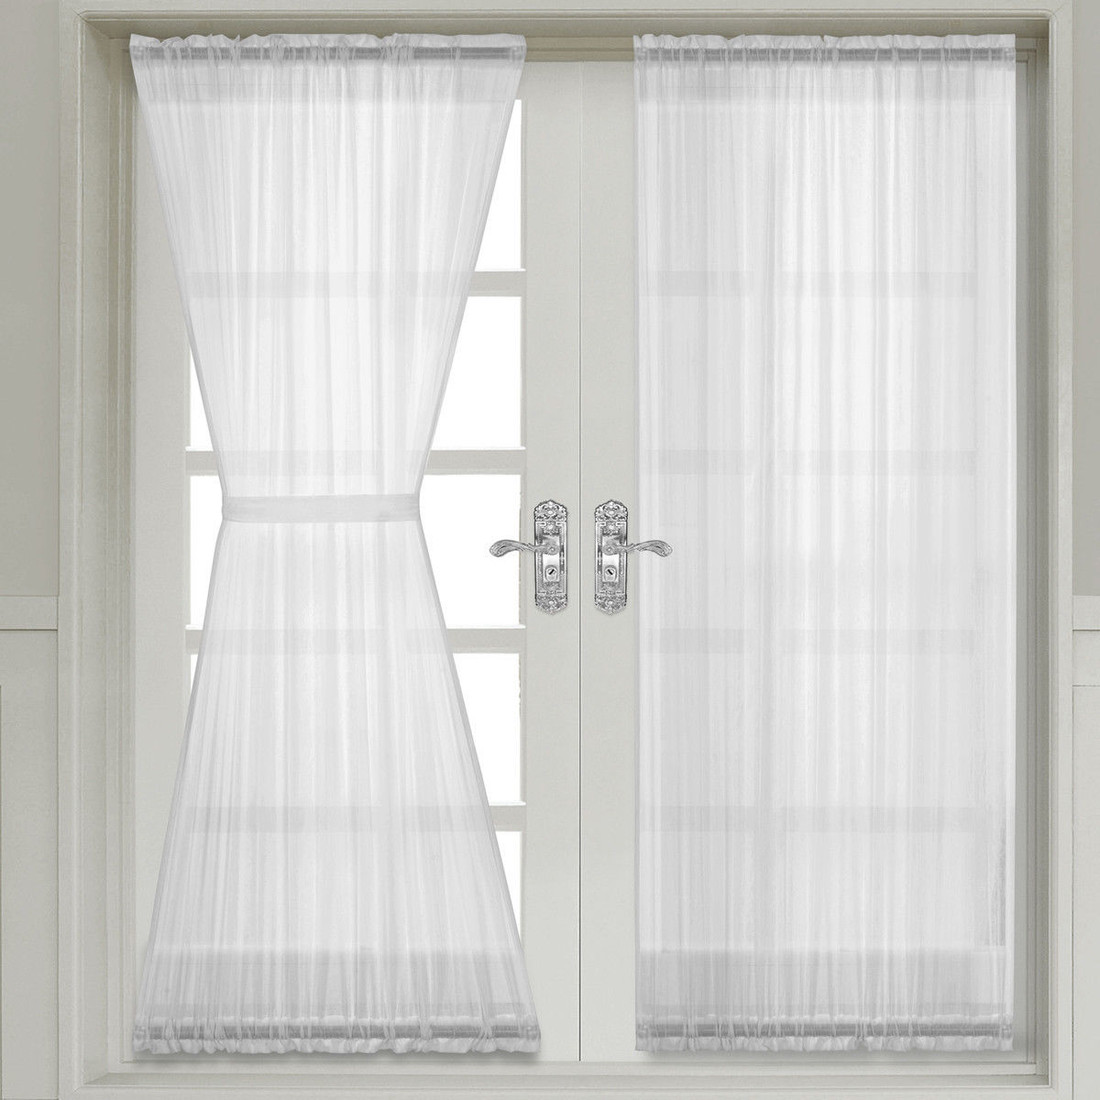 Door Panel Curtains : Abri crushed sheer door curtain panel single